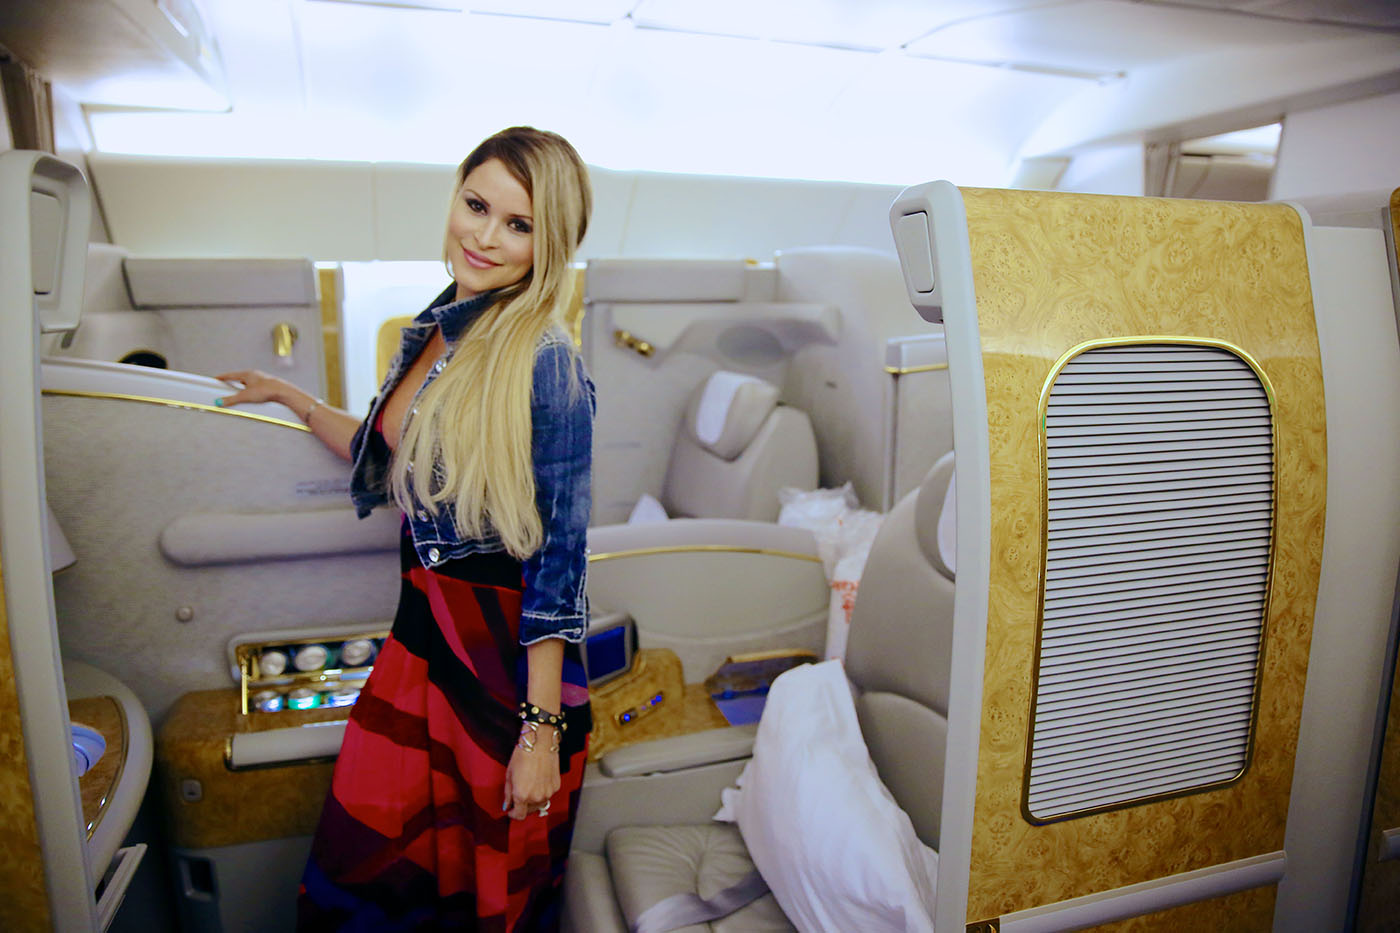 image Emirates airline hostess arab scandal